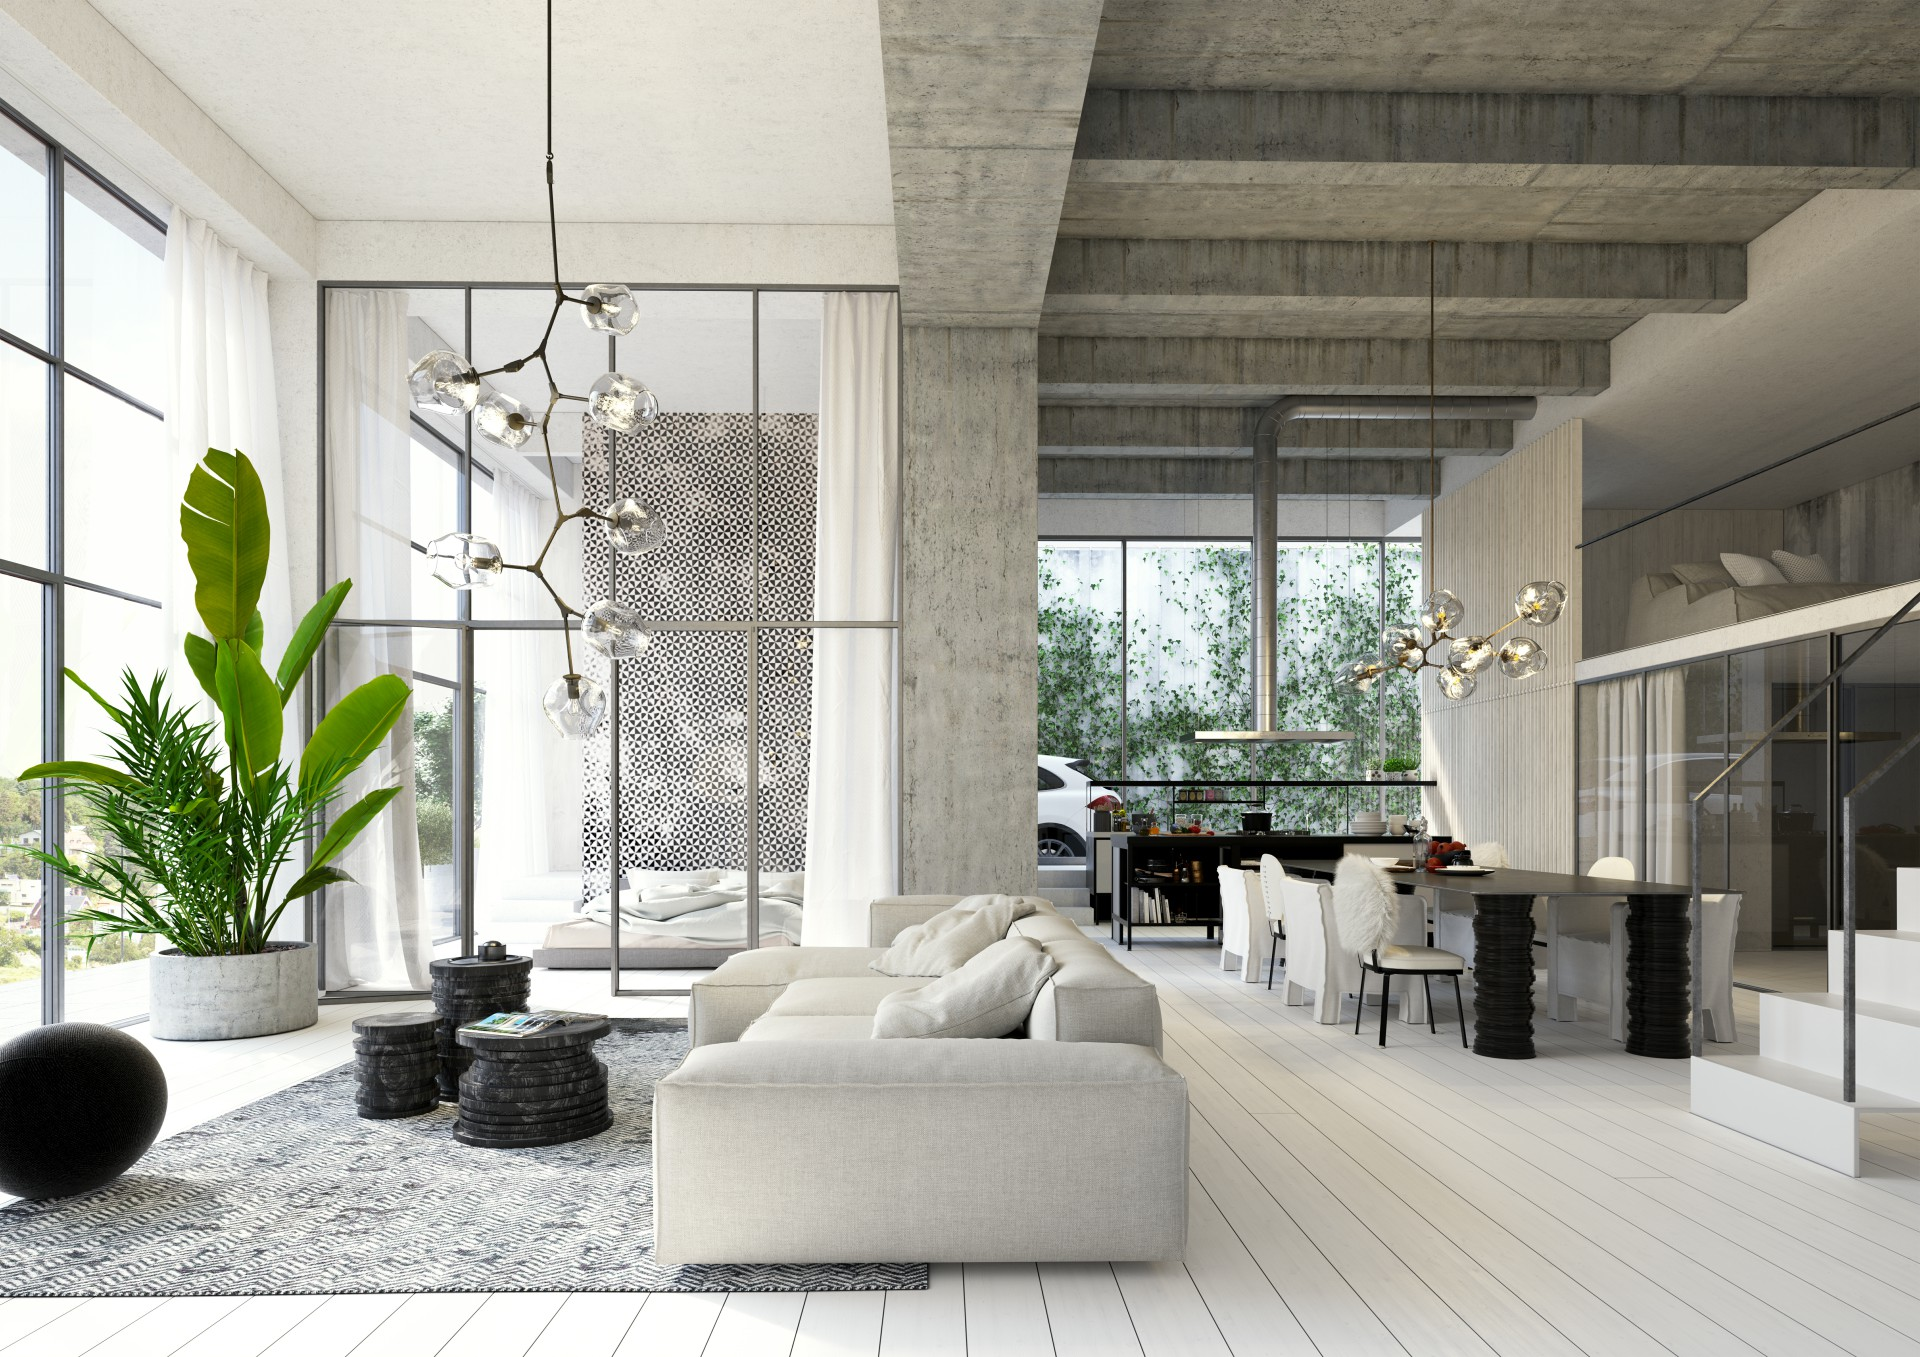 Loft interior design options available + 100m<sup>2</sup> by Ivanka Kowalski. Floor plan may differ to actual plan.